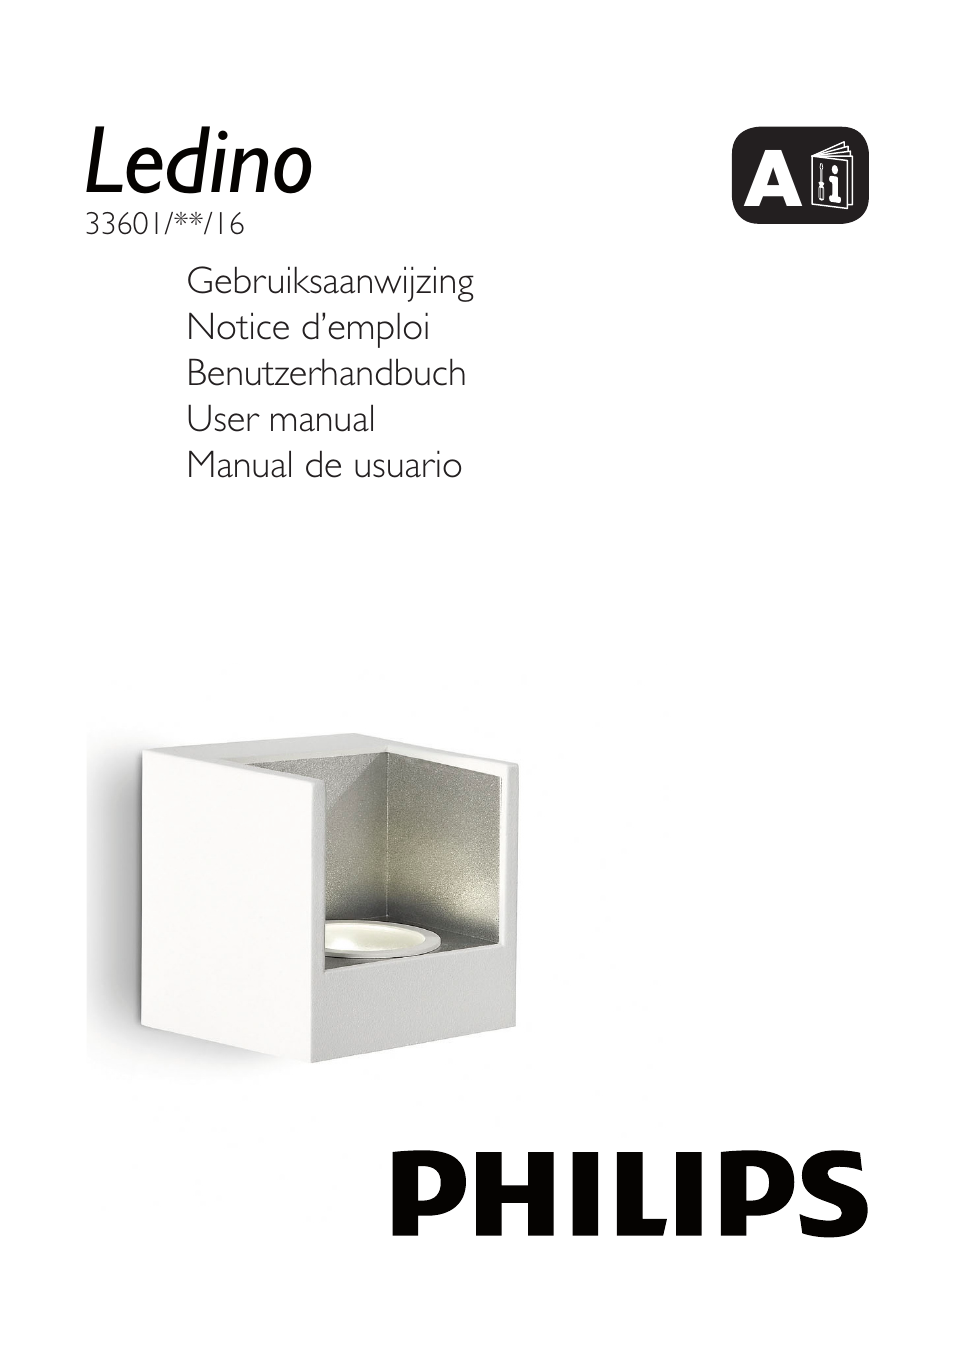 Philips ledino 33601 30 16 user manual 40 pages also for Philips ledino applique murale exterieur